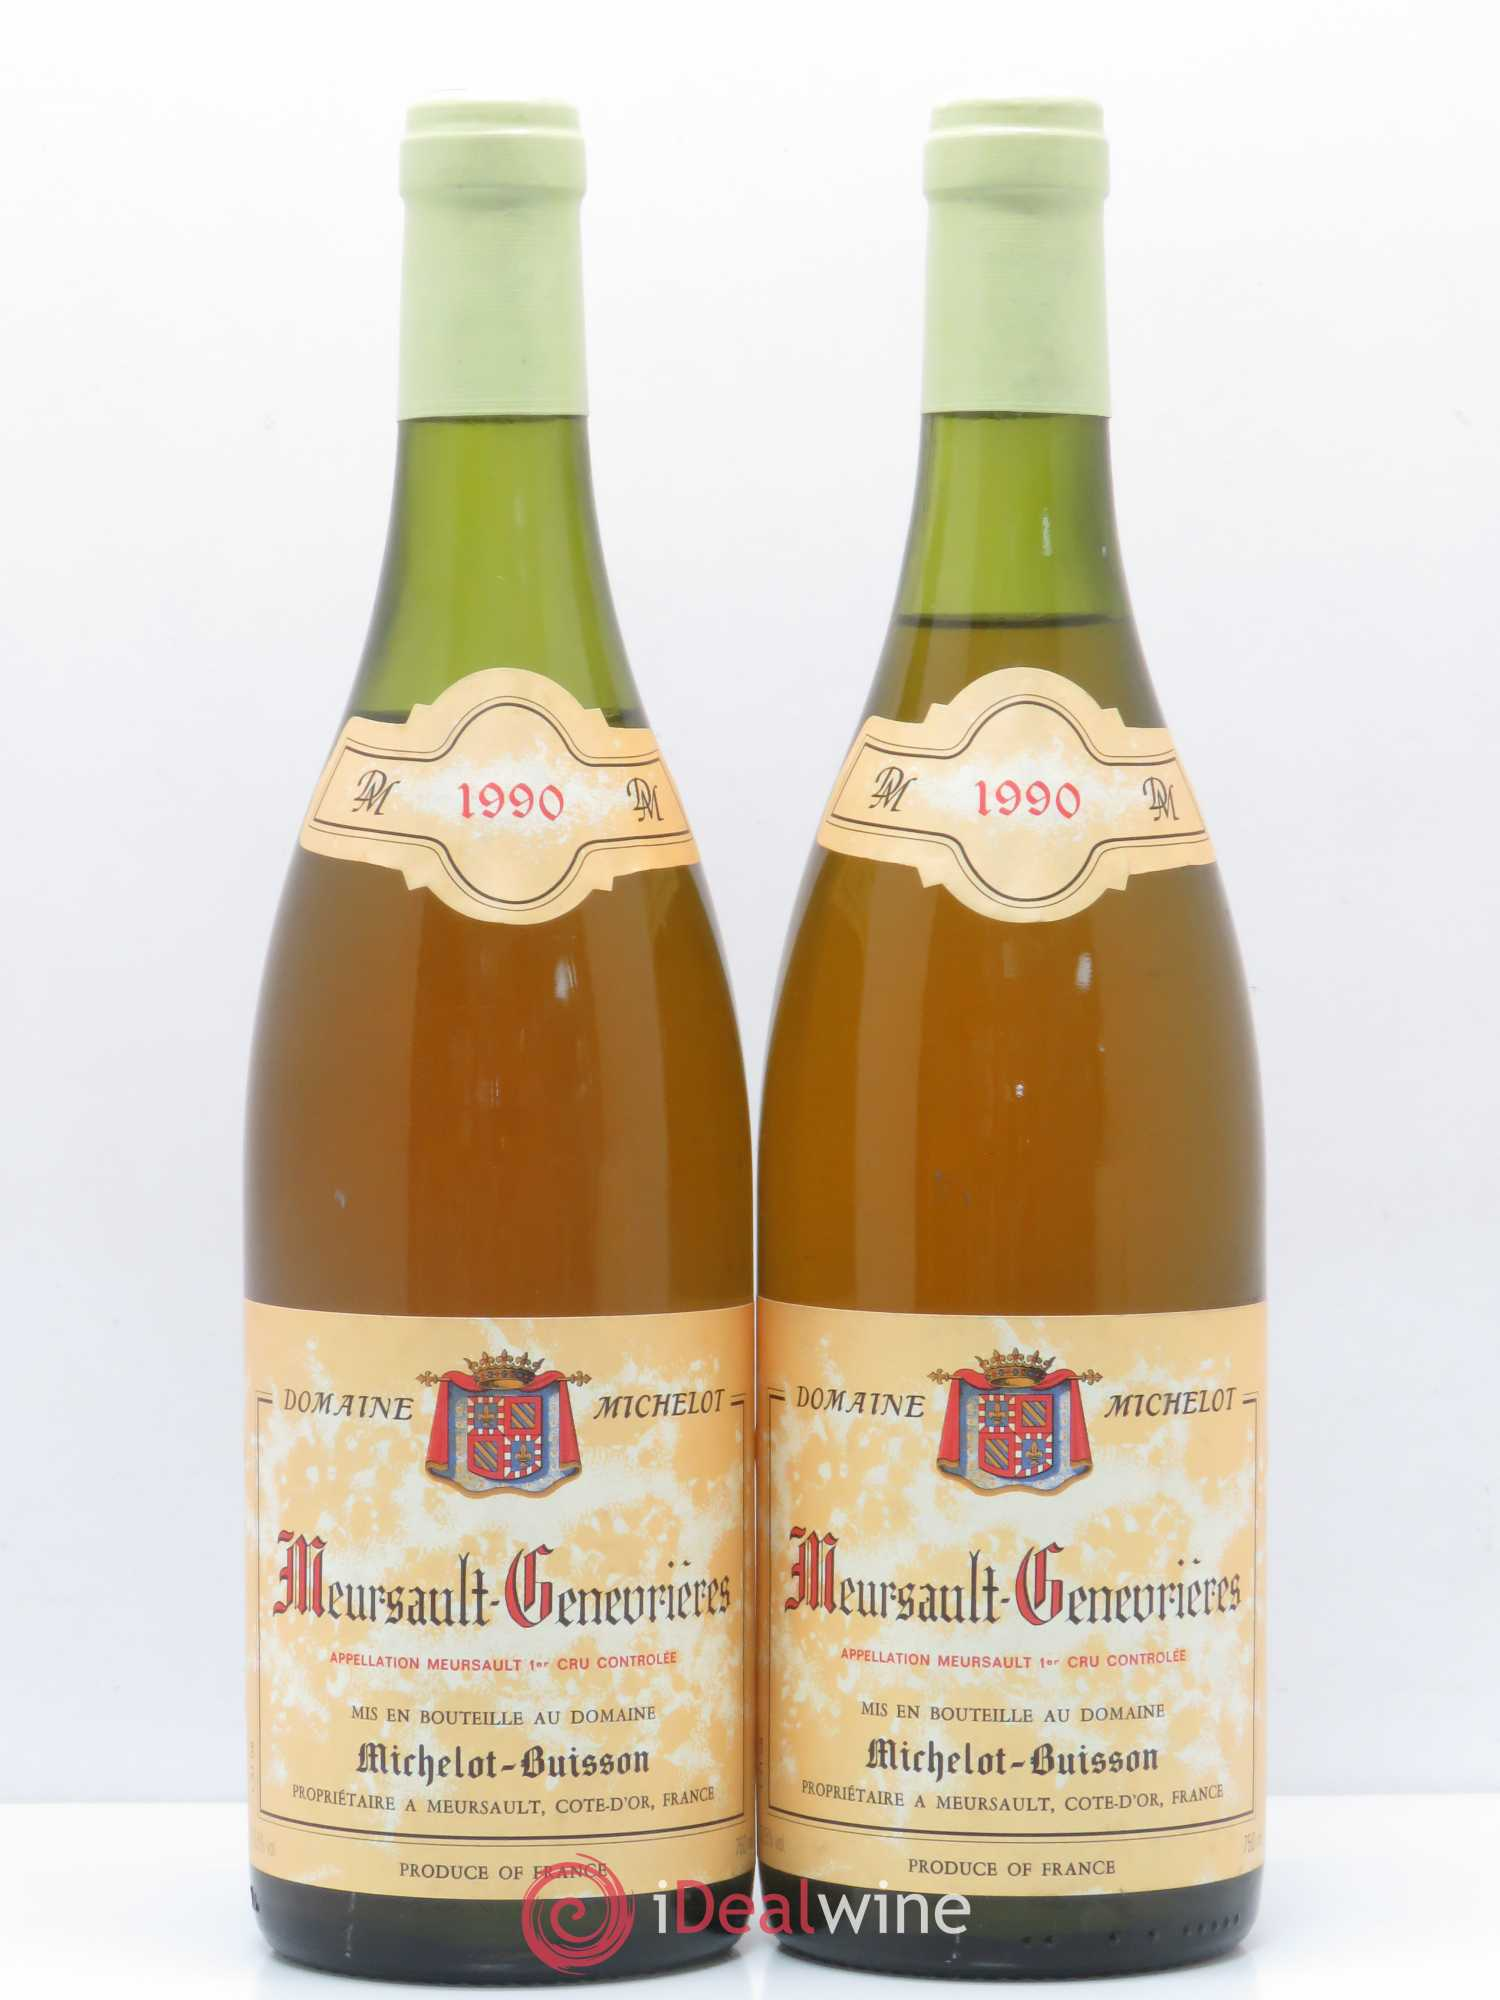 Meursault 1er Cru Genevrières Michelot-Buisson 1990 - Lot of 2 Bottles